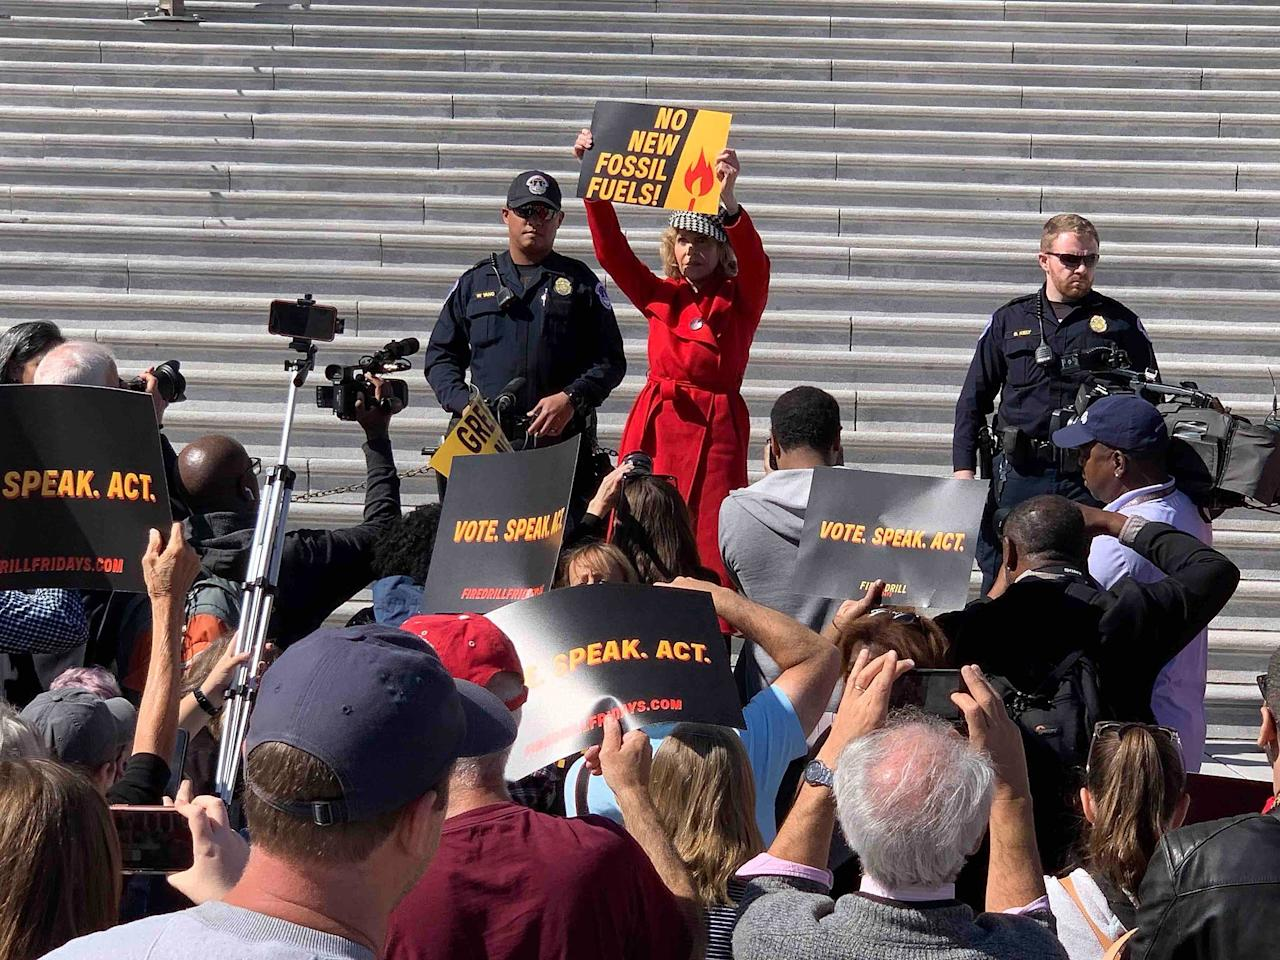 """The 81-year-old actress was arrested on the steps of the United States Capitol while protesting against climate change on Friday, Oct. 11, 2019.  Fonda had been open about the fact that she planned to be arrested, saying that she would be protesting for the next 14 Fridays. She told <em>The Washington Post</em>, """"I'm going to take my body, which is kind of famous and popular right now because of the [Netflix] series [<em>Grace and Frankie</em>] and I'm going to go to D.C. and I'm going to have a rally every Friday.""""  The actress added, """"It'll be called 'Fire Drill Friday.' And we're going to engage in civil disobedience and we're going to get arrested every Friday.""""  As predicted, <a href=""""https://people.com/crime/jane-fonda-sam-waterston-arrested-capitol-climate-change/"""">she was arrested again</a> on Oct. 18, this time, reportedly, with fellow actor Sam Waterston. Before her arrest, Fonda spoke about her mission, and praised the proposed<a href=""""https://people.com/politics/alexandria-ocasio-cortez-burlesque-show-green-new-deal-chants/"""">Green New Deal</a>, an ambitious legislative undertaking to address climate change.  """"This will be a huge, disruptive, super-ambitious undertaking. And yes, it's going to cost a whole lot of money. But the cost of inaction is even huger.""""  Fonda is no stranger to standing up for what she believes in: she <a href=""""https://www.washingtonpost.com/news/retropolis/wp/2017/09/18/how-jane-fondas-1972-trip-to-north-vietnam-earned-her-the-nickname-hanoi-jane/"""">was active in the Black Panthers</a> in the early '70s, and famously garnered both praise and criticism over the years for her anti-Vietnam War stance."""